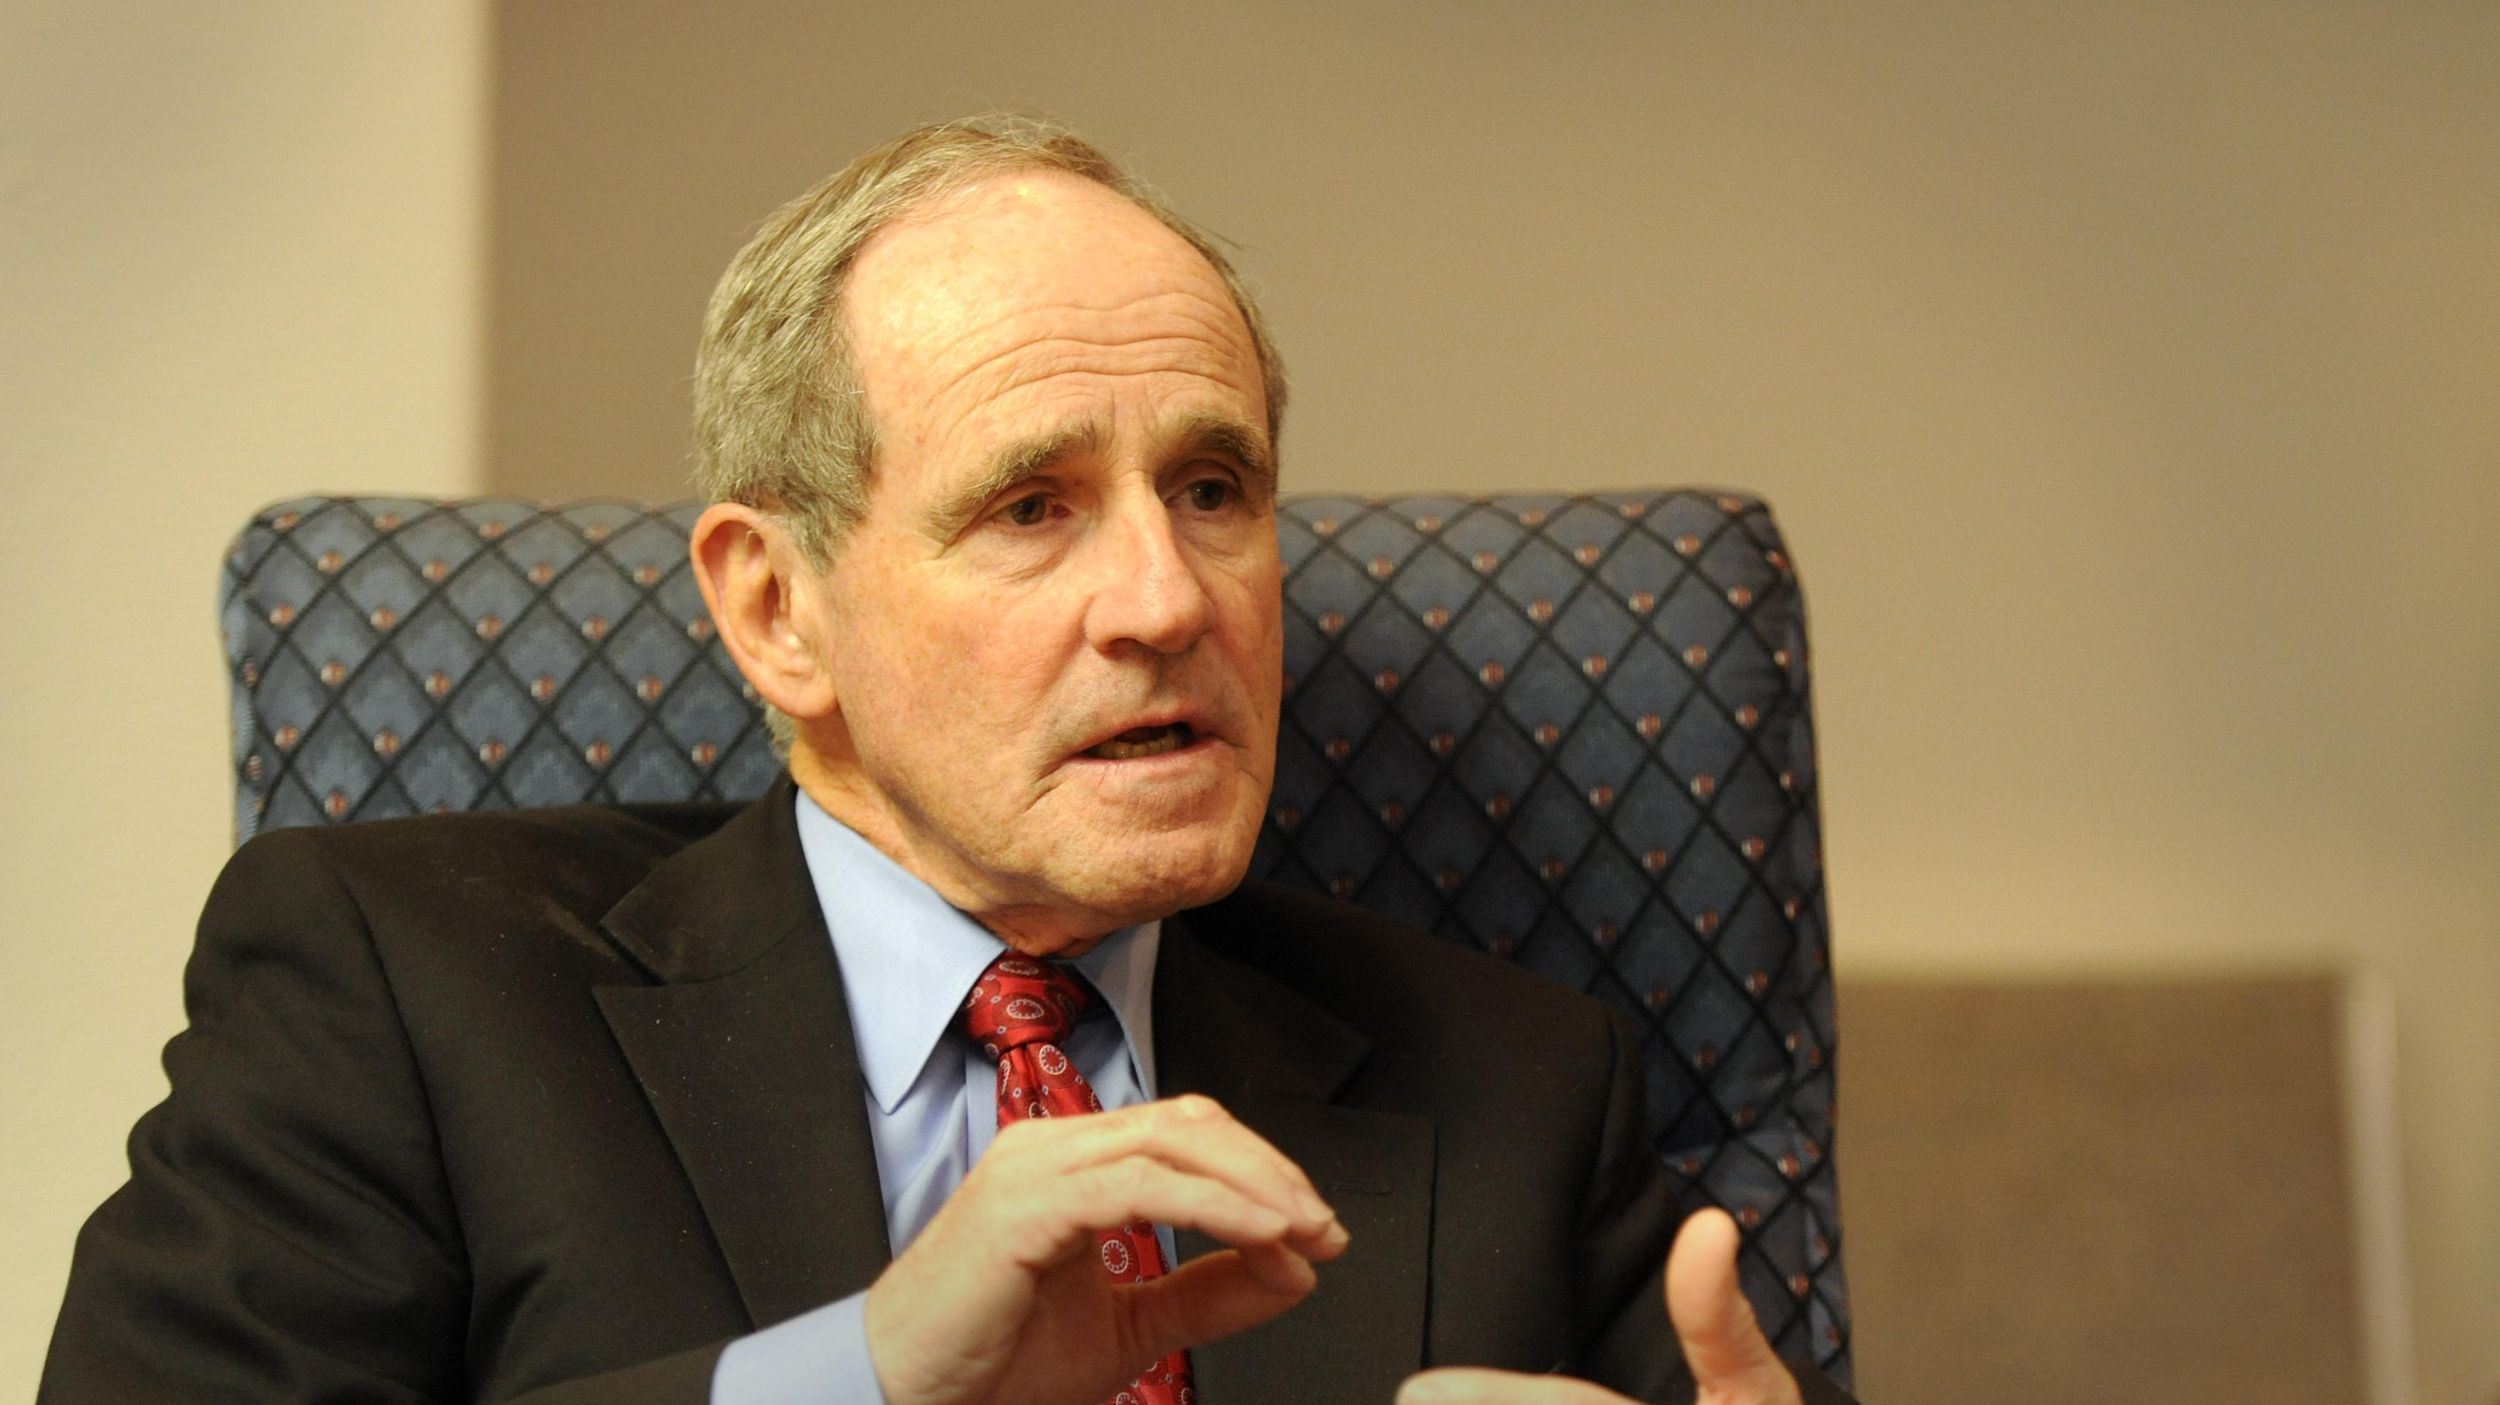 James Risch Phone Number, Email, Fan Mail, Address, Biography, Agent, Manager, Mailing address, Contact Info, Mailing Addresses